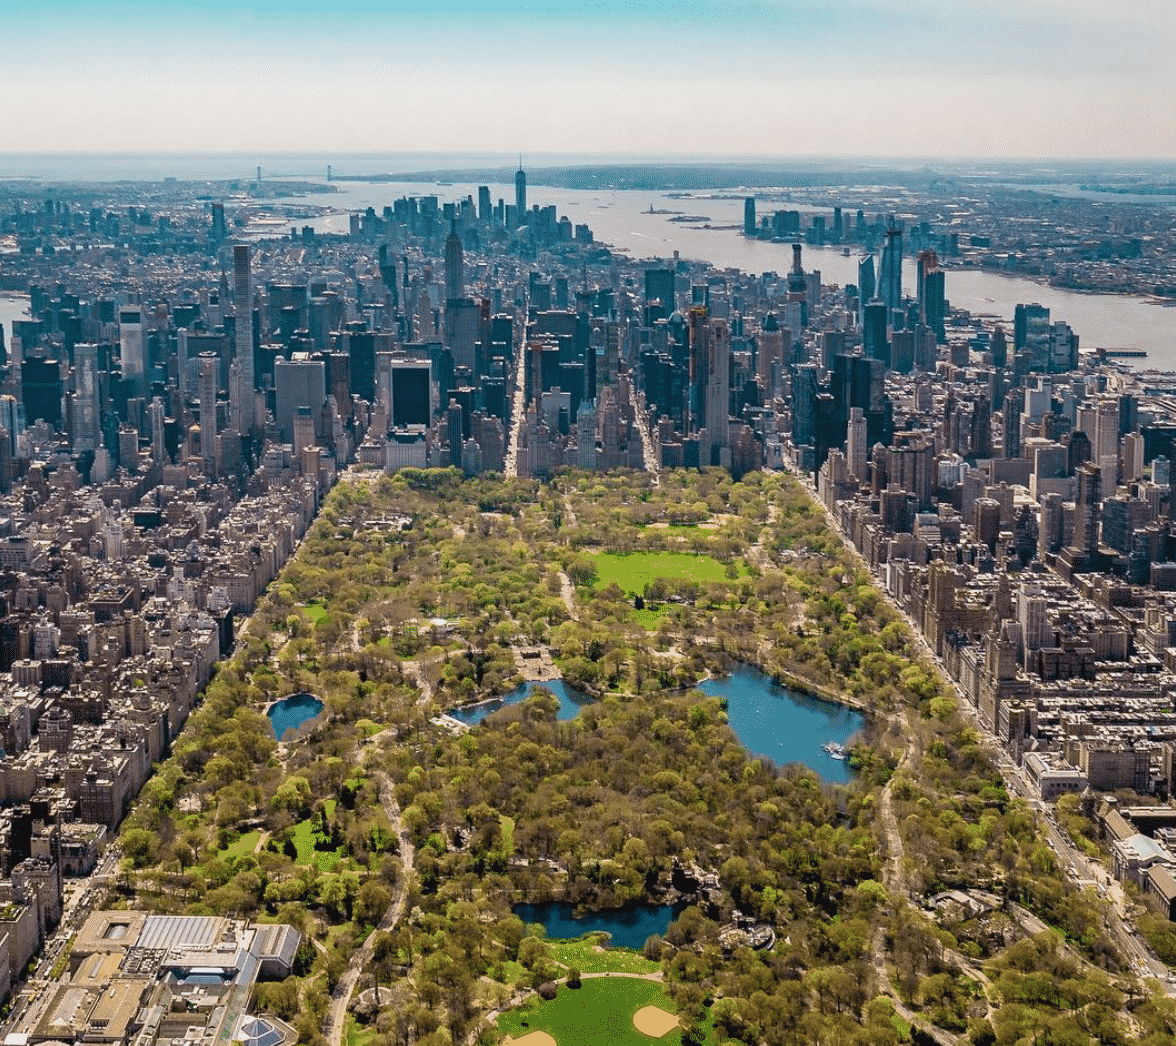 The Most Instagrammable Spots In New York